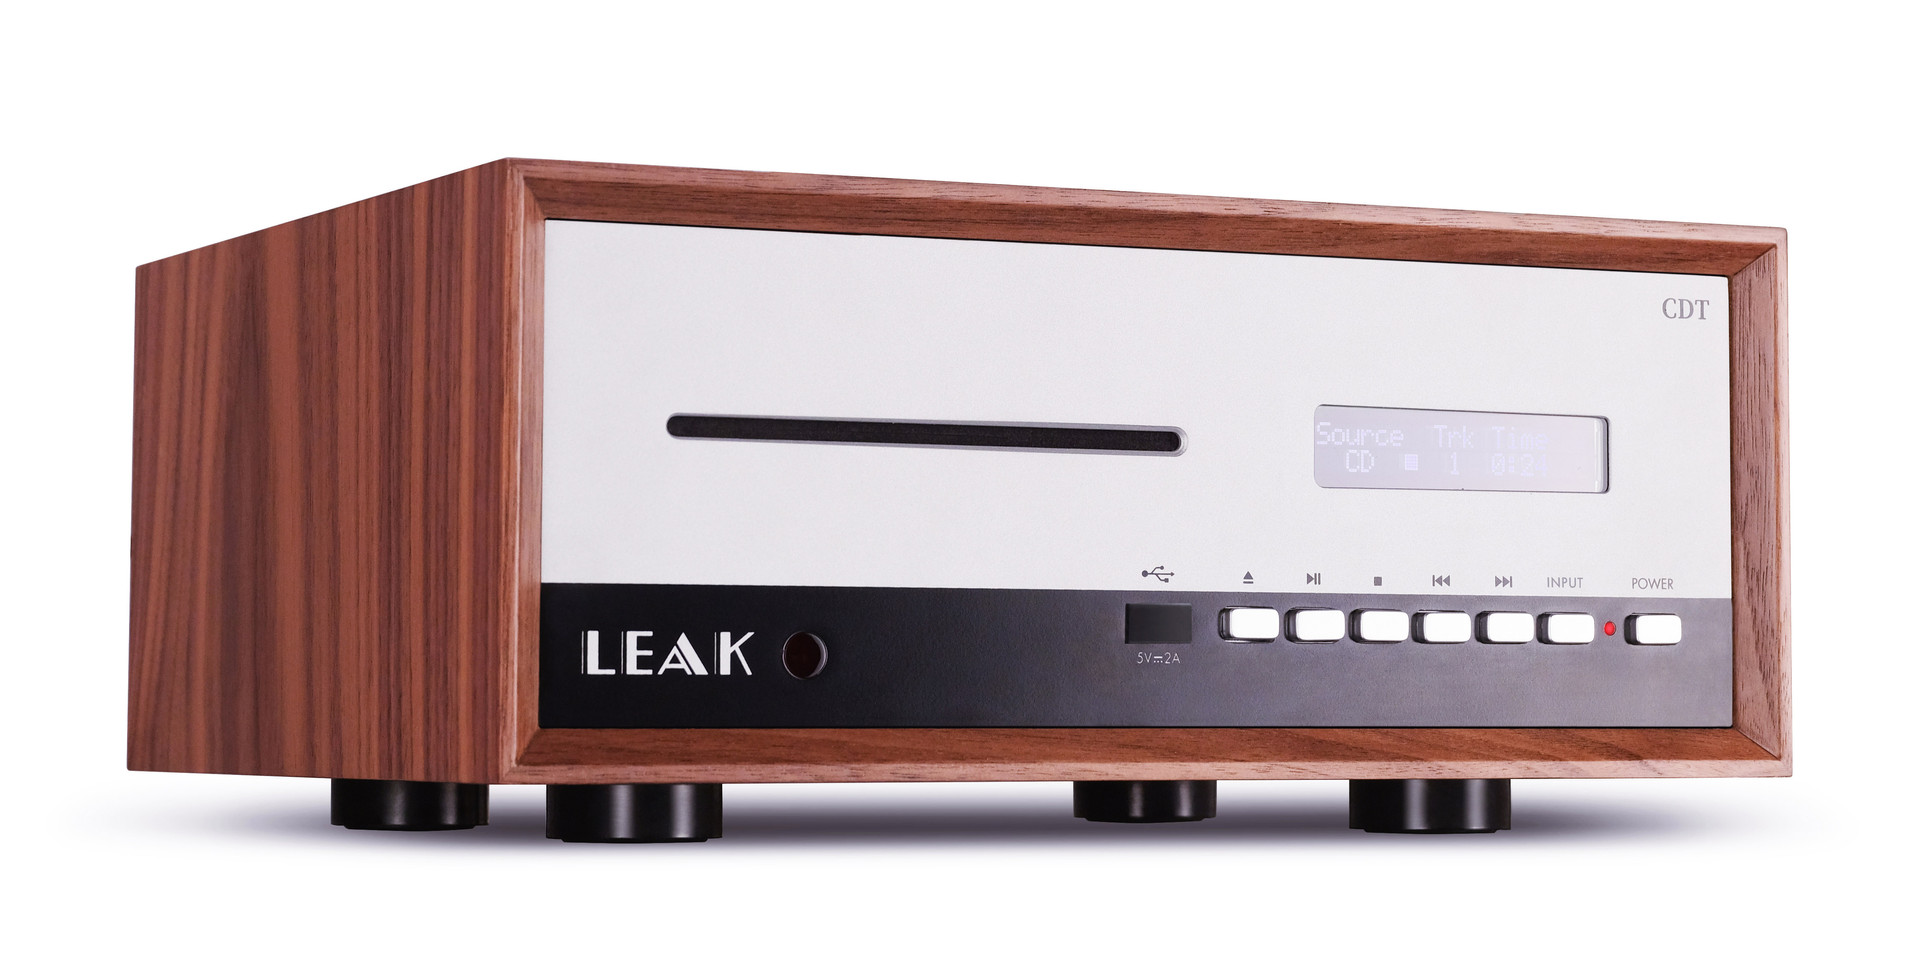 LEAK CDT Standard Walnut with USB cover